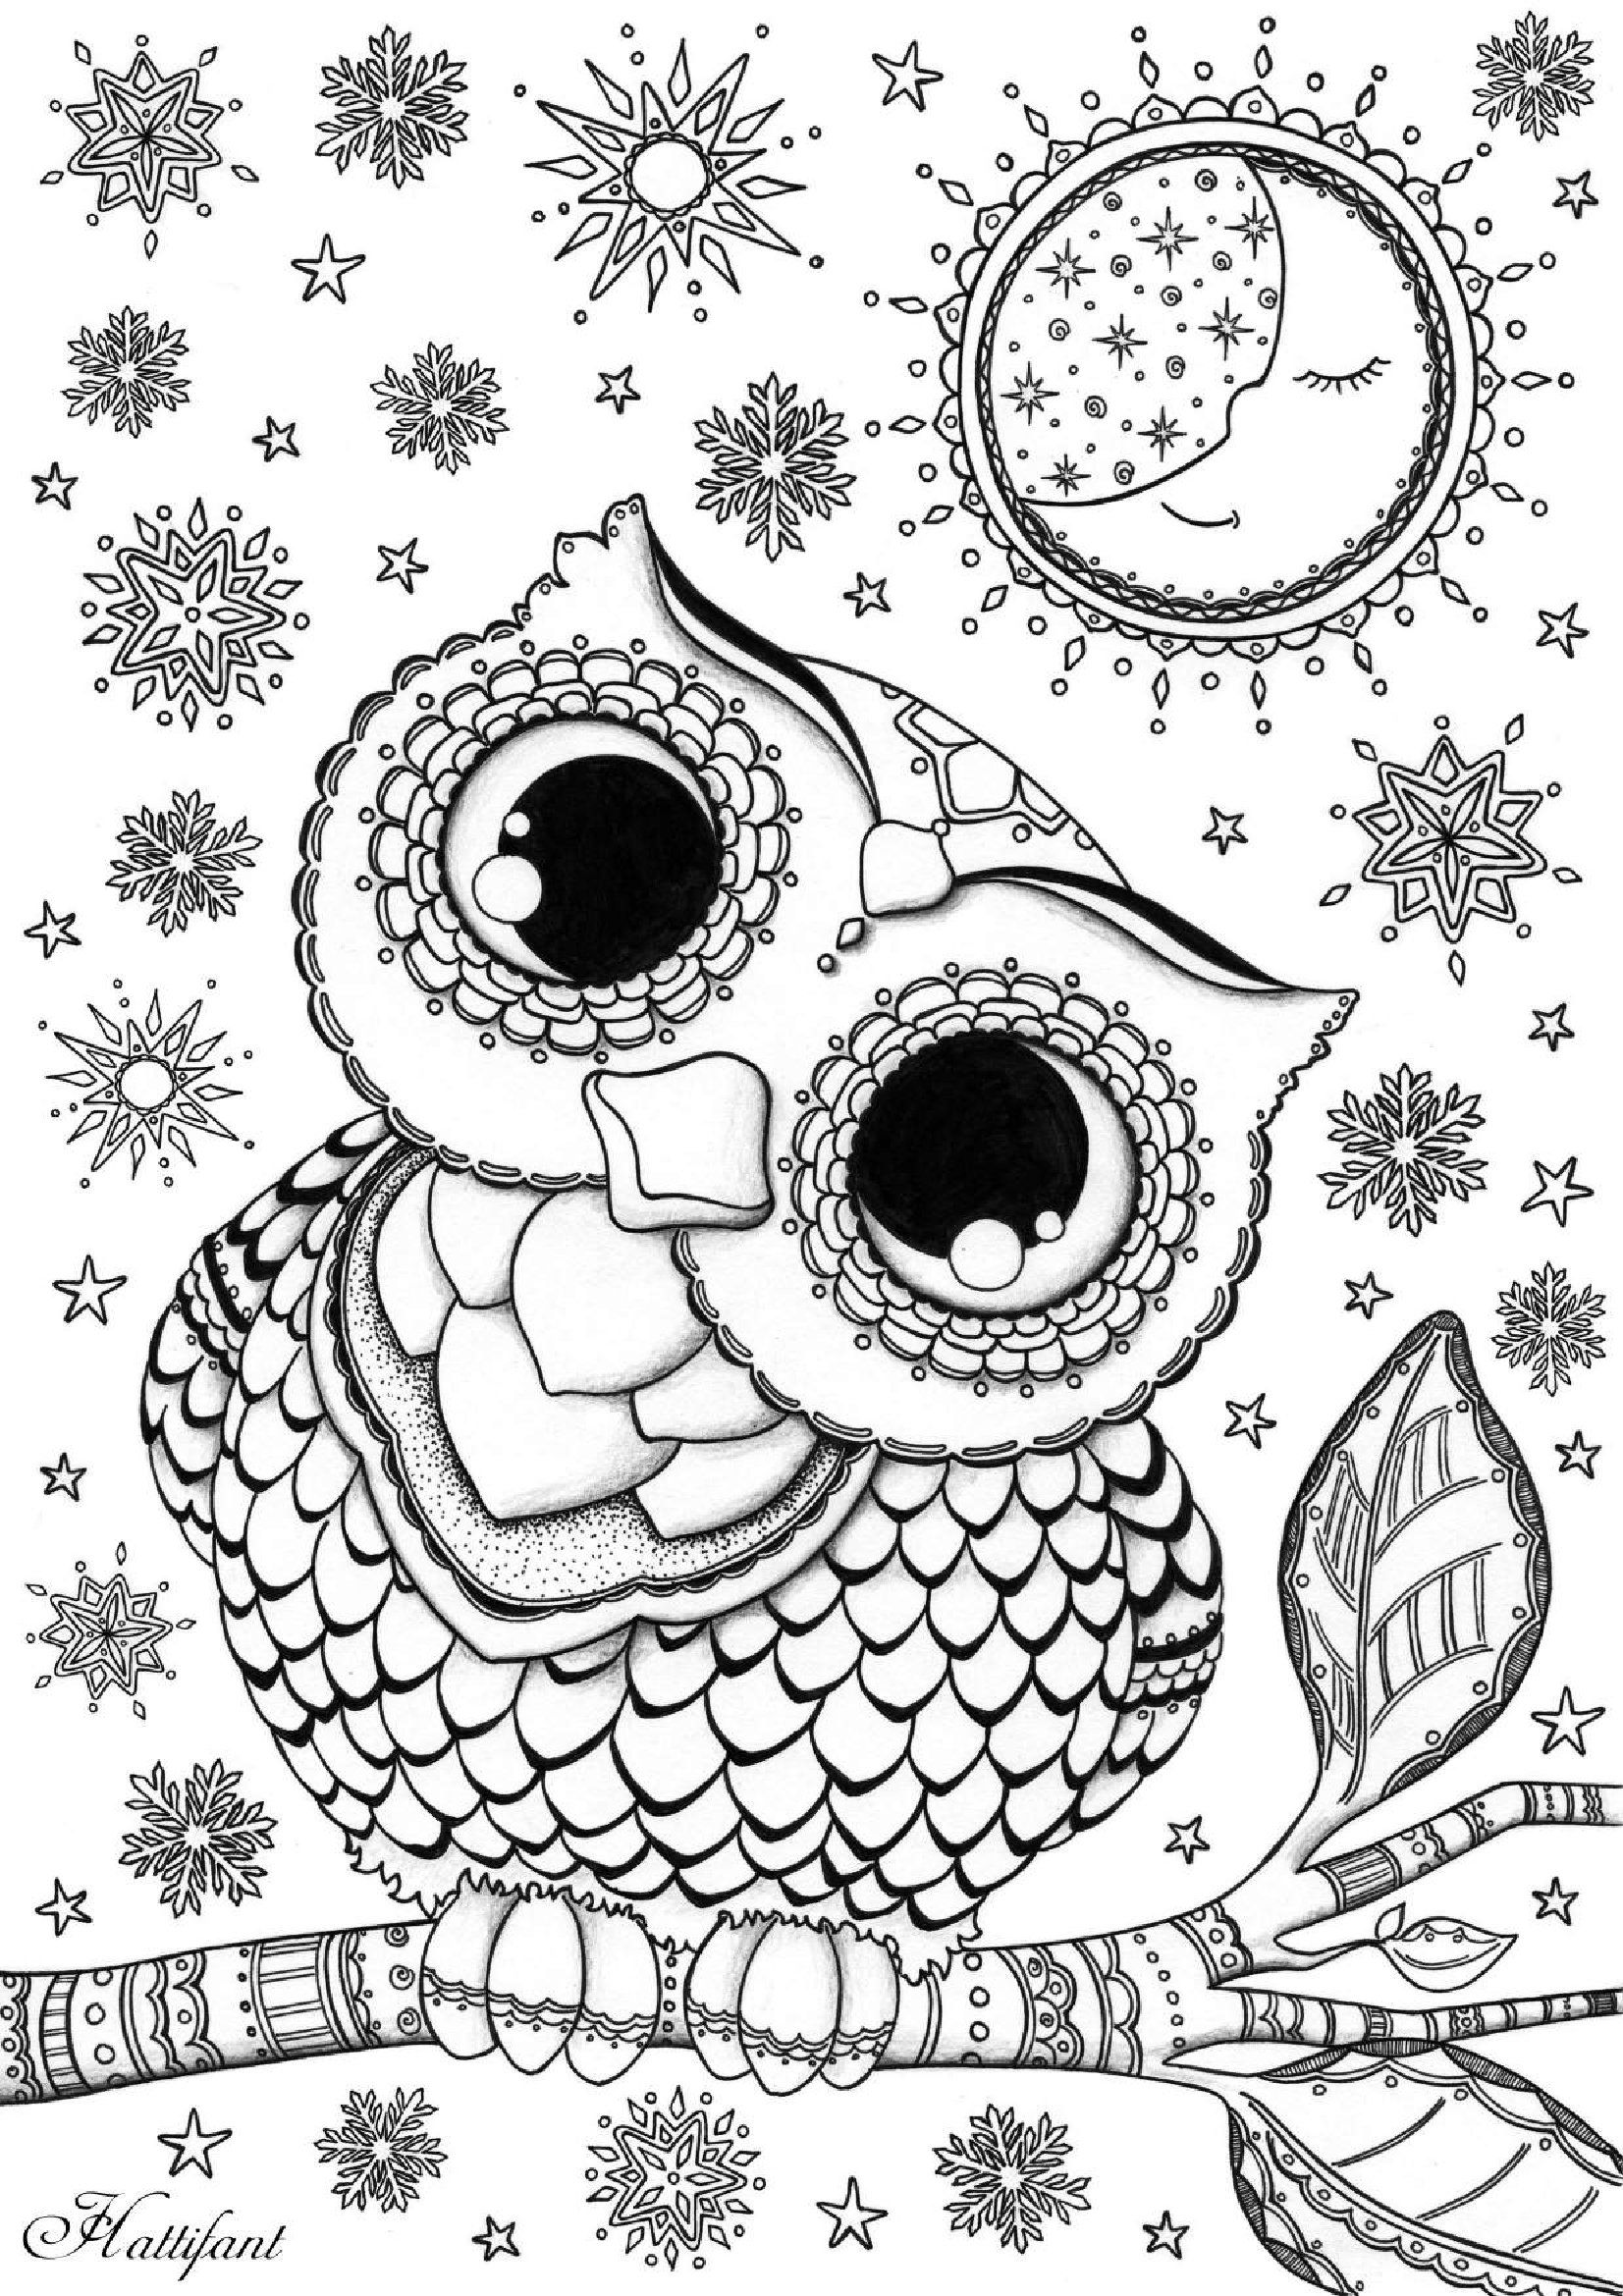 detailed owl coloring pages owl coloring pages for adults free detailed owl coloring detailed coloring pages owl 1 1